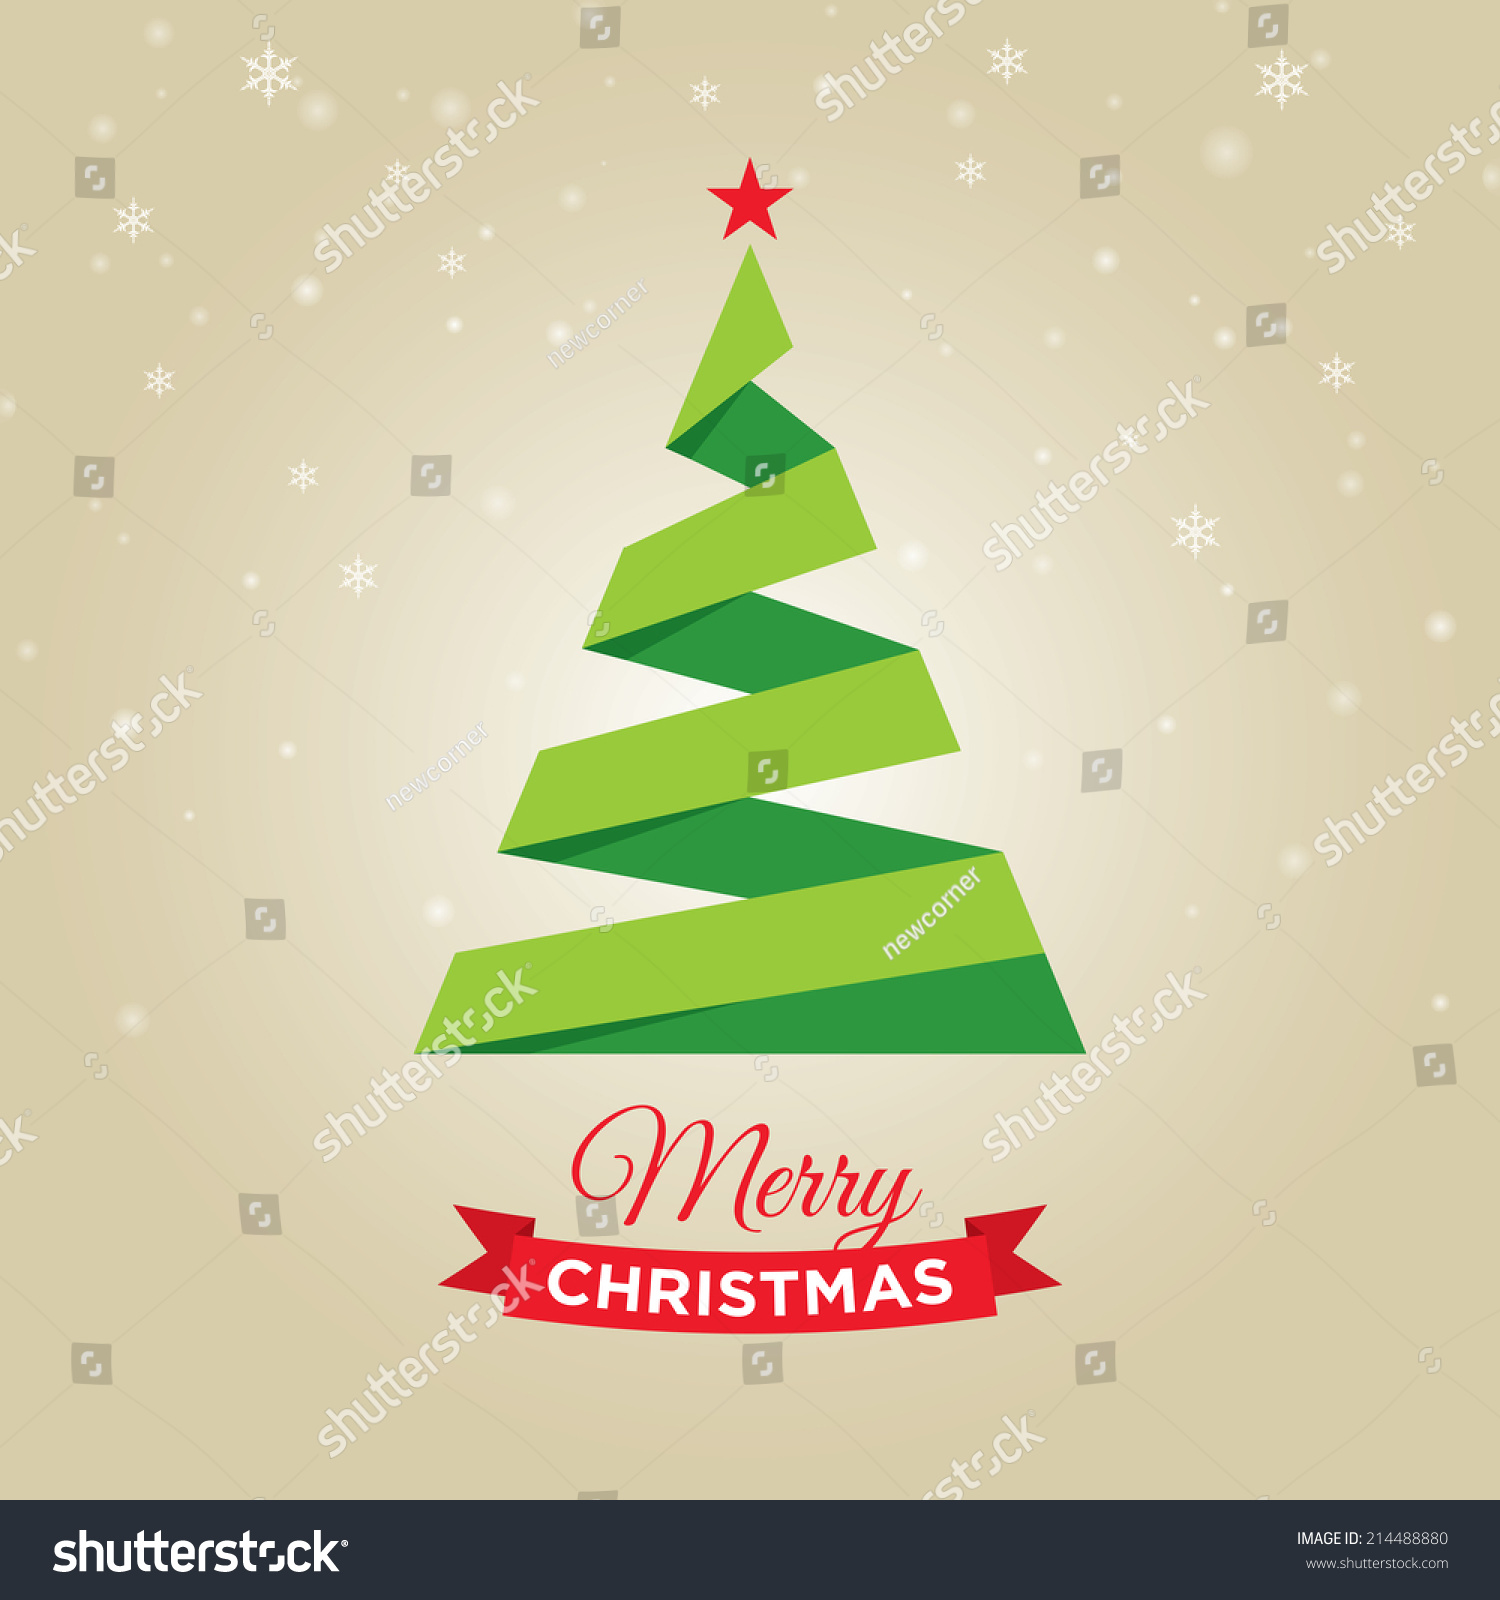 Merry Christmas Card Graphic Christmas Tree Stock Vector Royalty